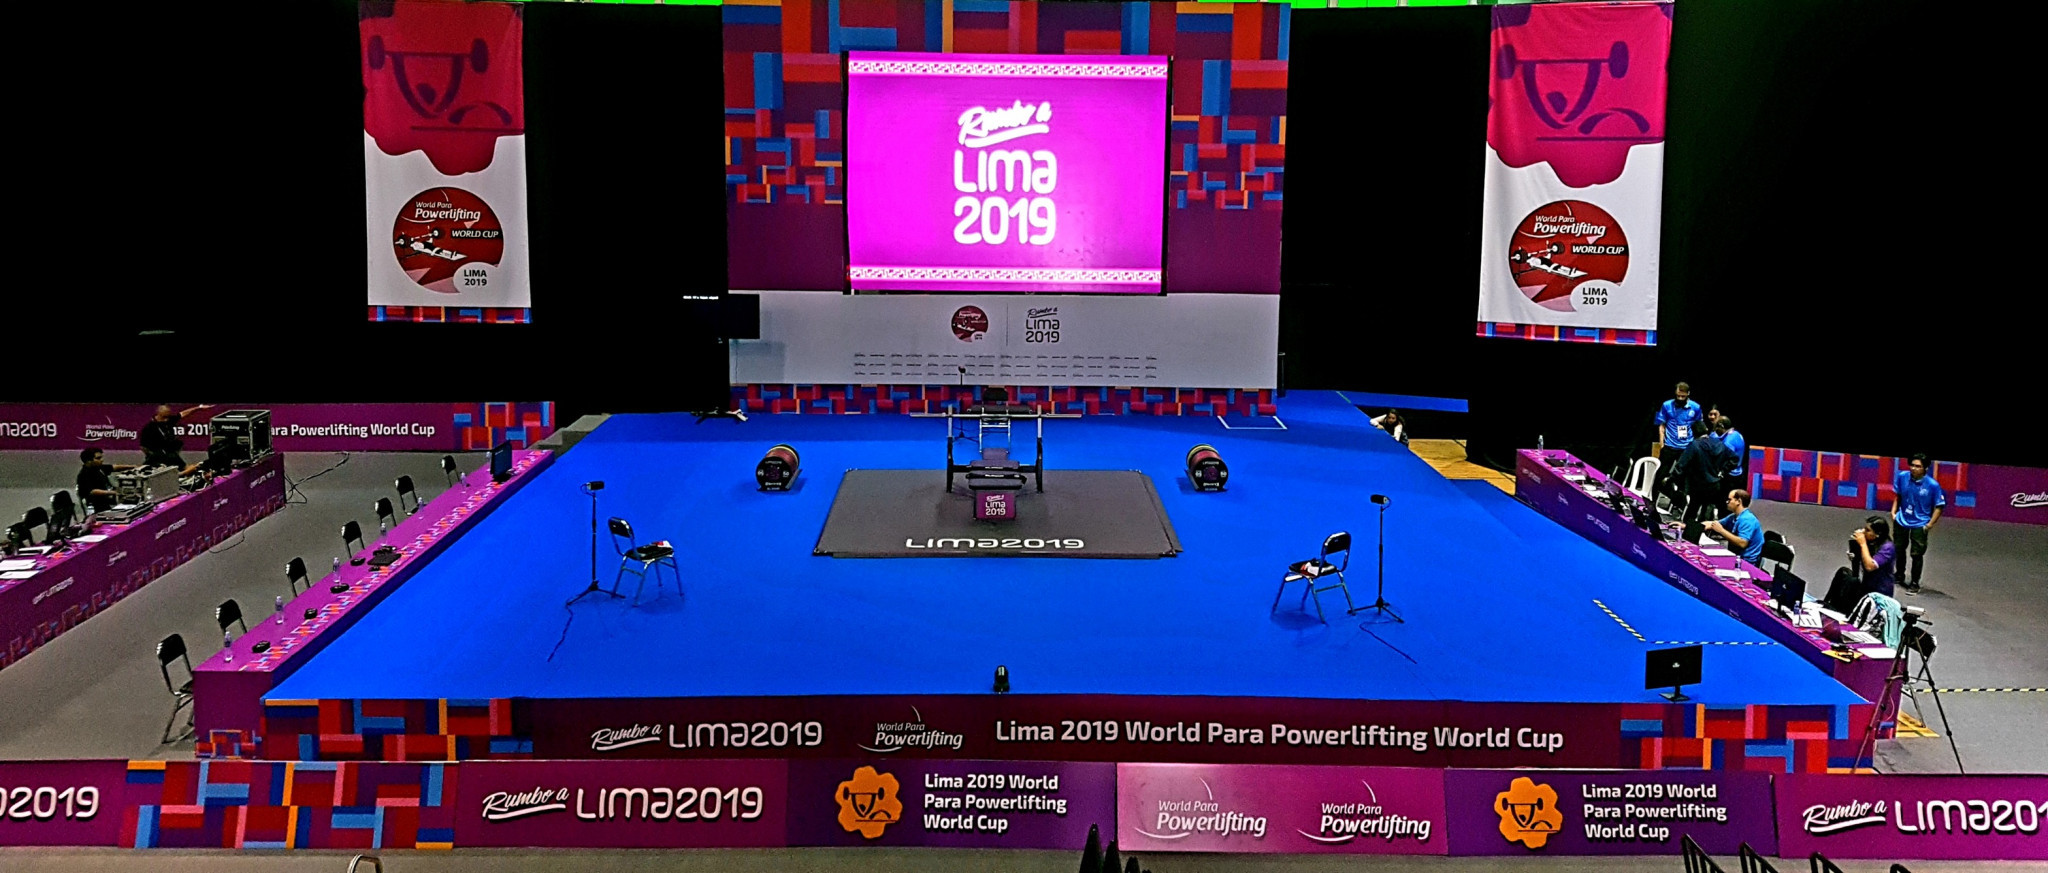 The final day of the World Para Powerlifting World Cup in Lima will take place tomorrow ©Para Powerlifting